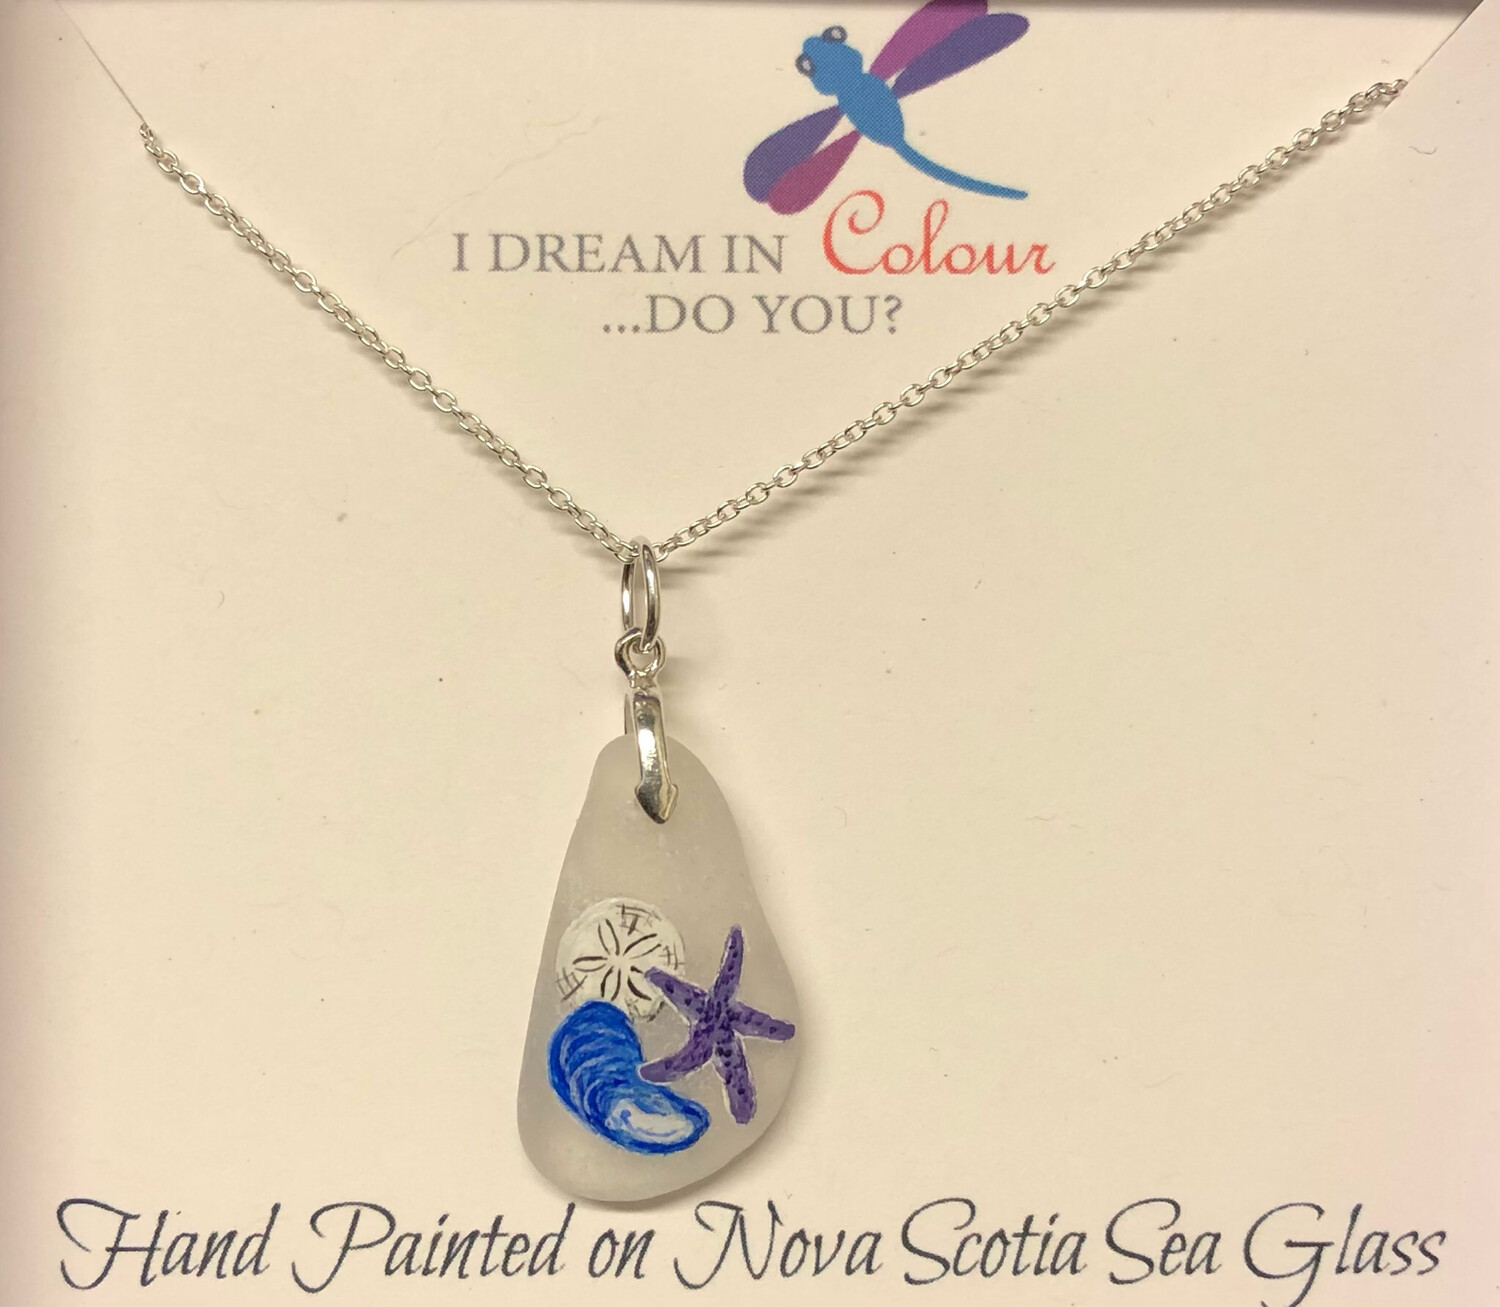 Painted Sea Glass, Shells - I Dream in Colour